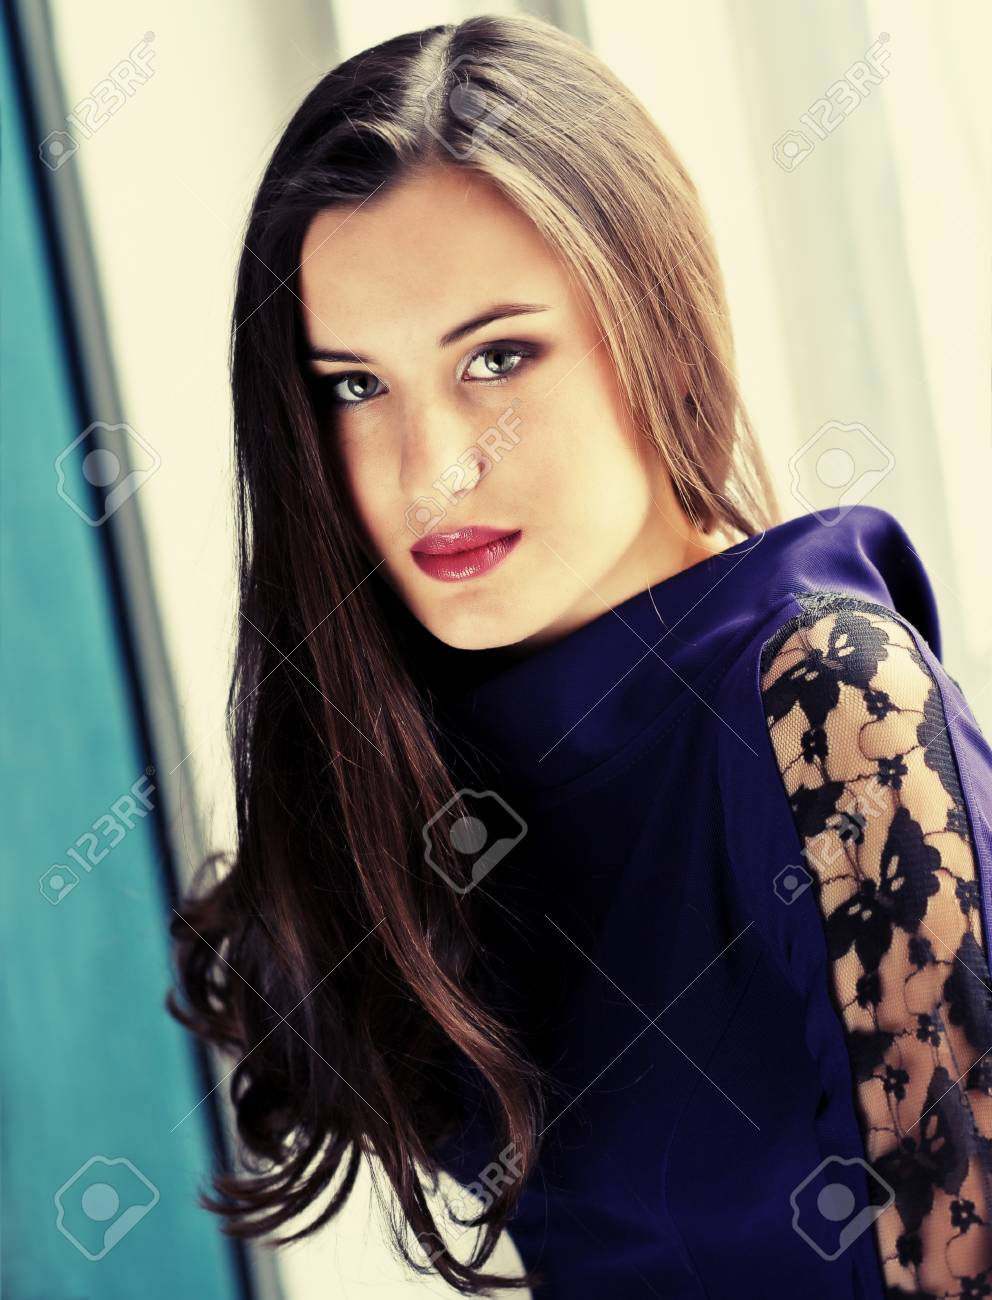 woman with her hair in a room on a dark background Stock Photo - 25590413